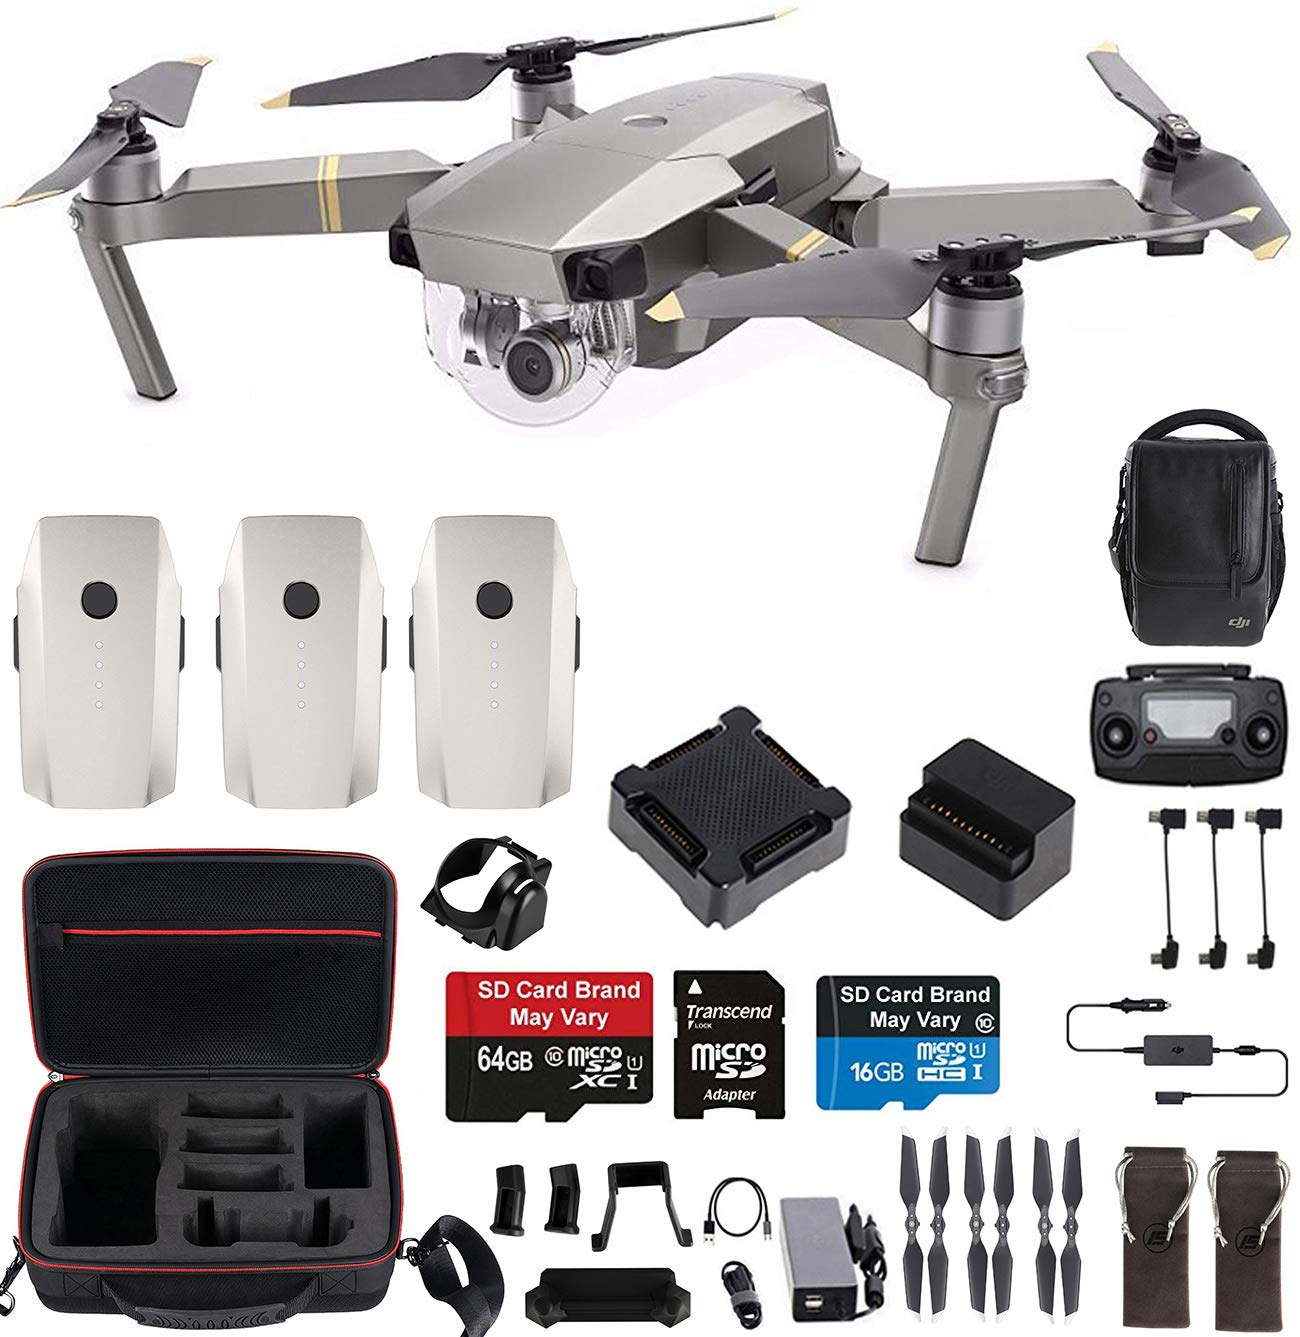 DJI Mavic Pro Platinum Fly More Combo Travel Bundle: Extra 2 Batteries, Professional Case and More by DJI